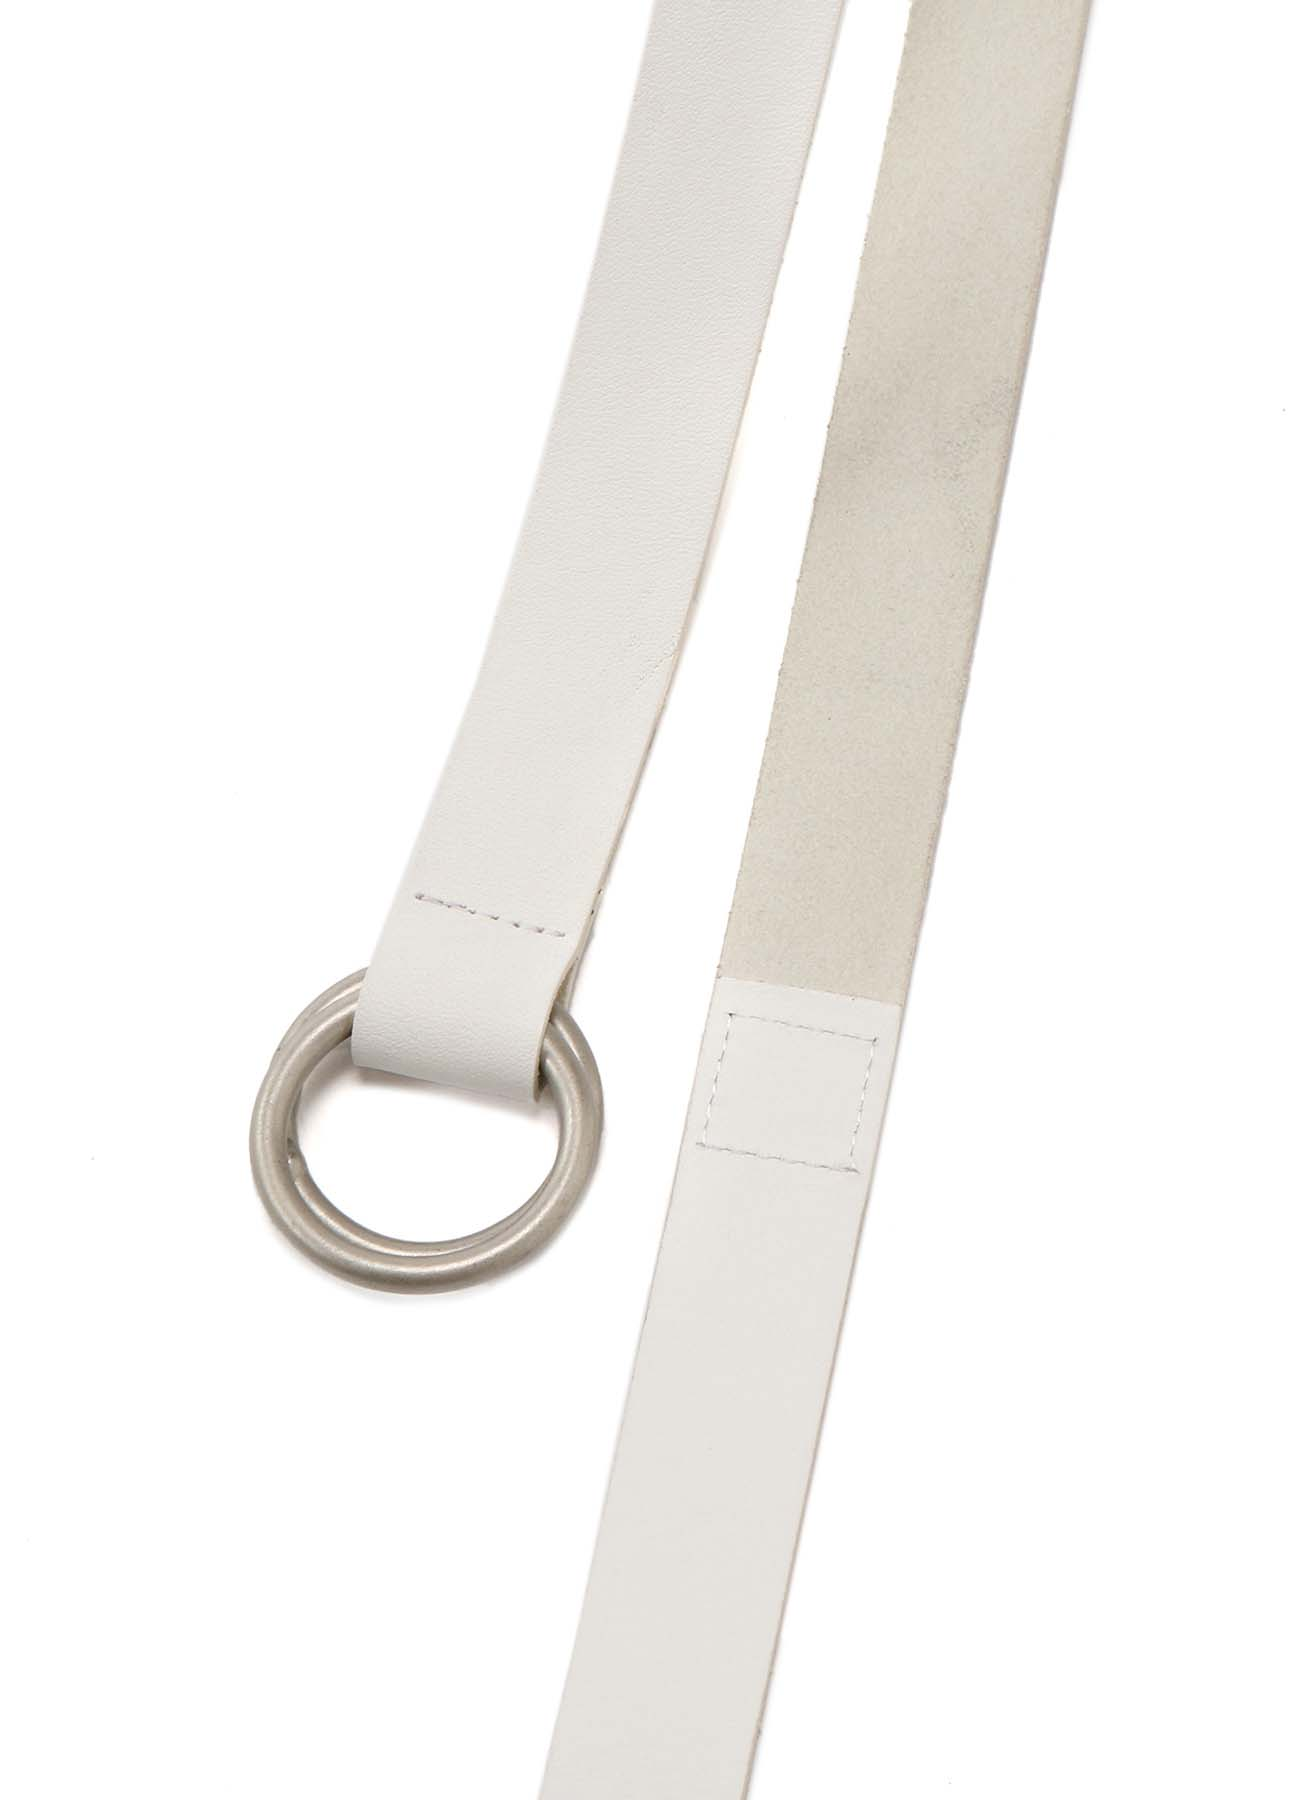 Cow Leather 25mm Long Ring Belt